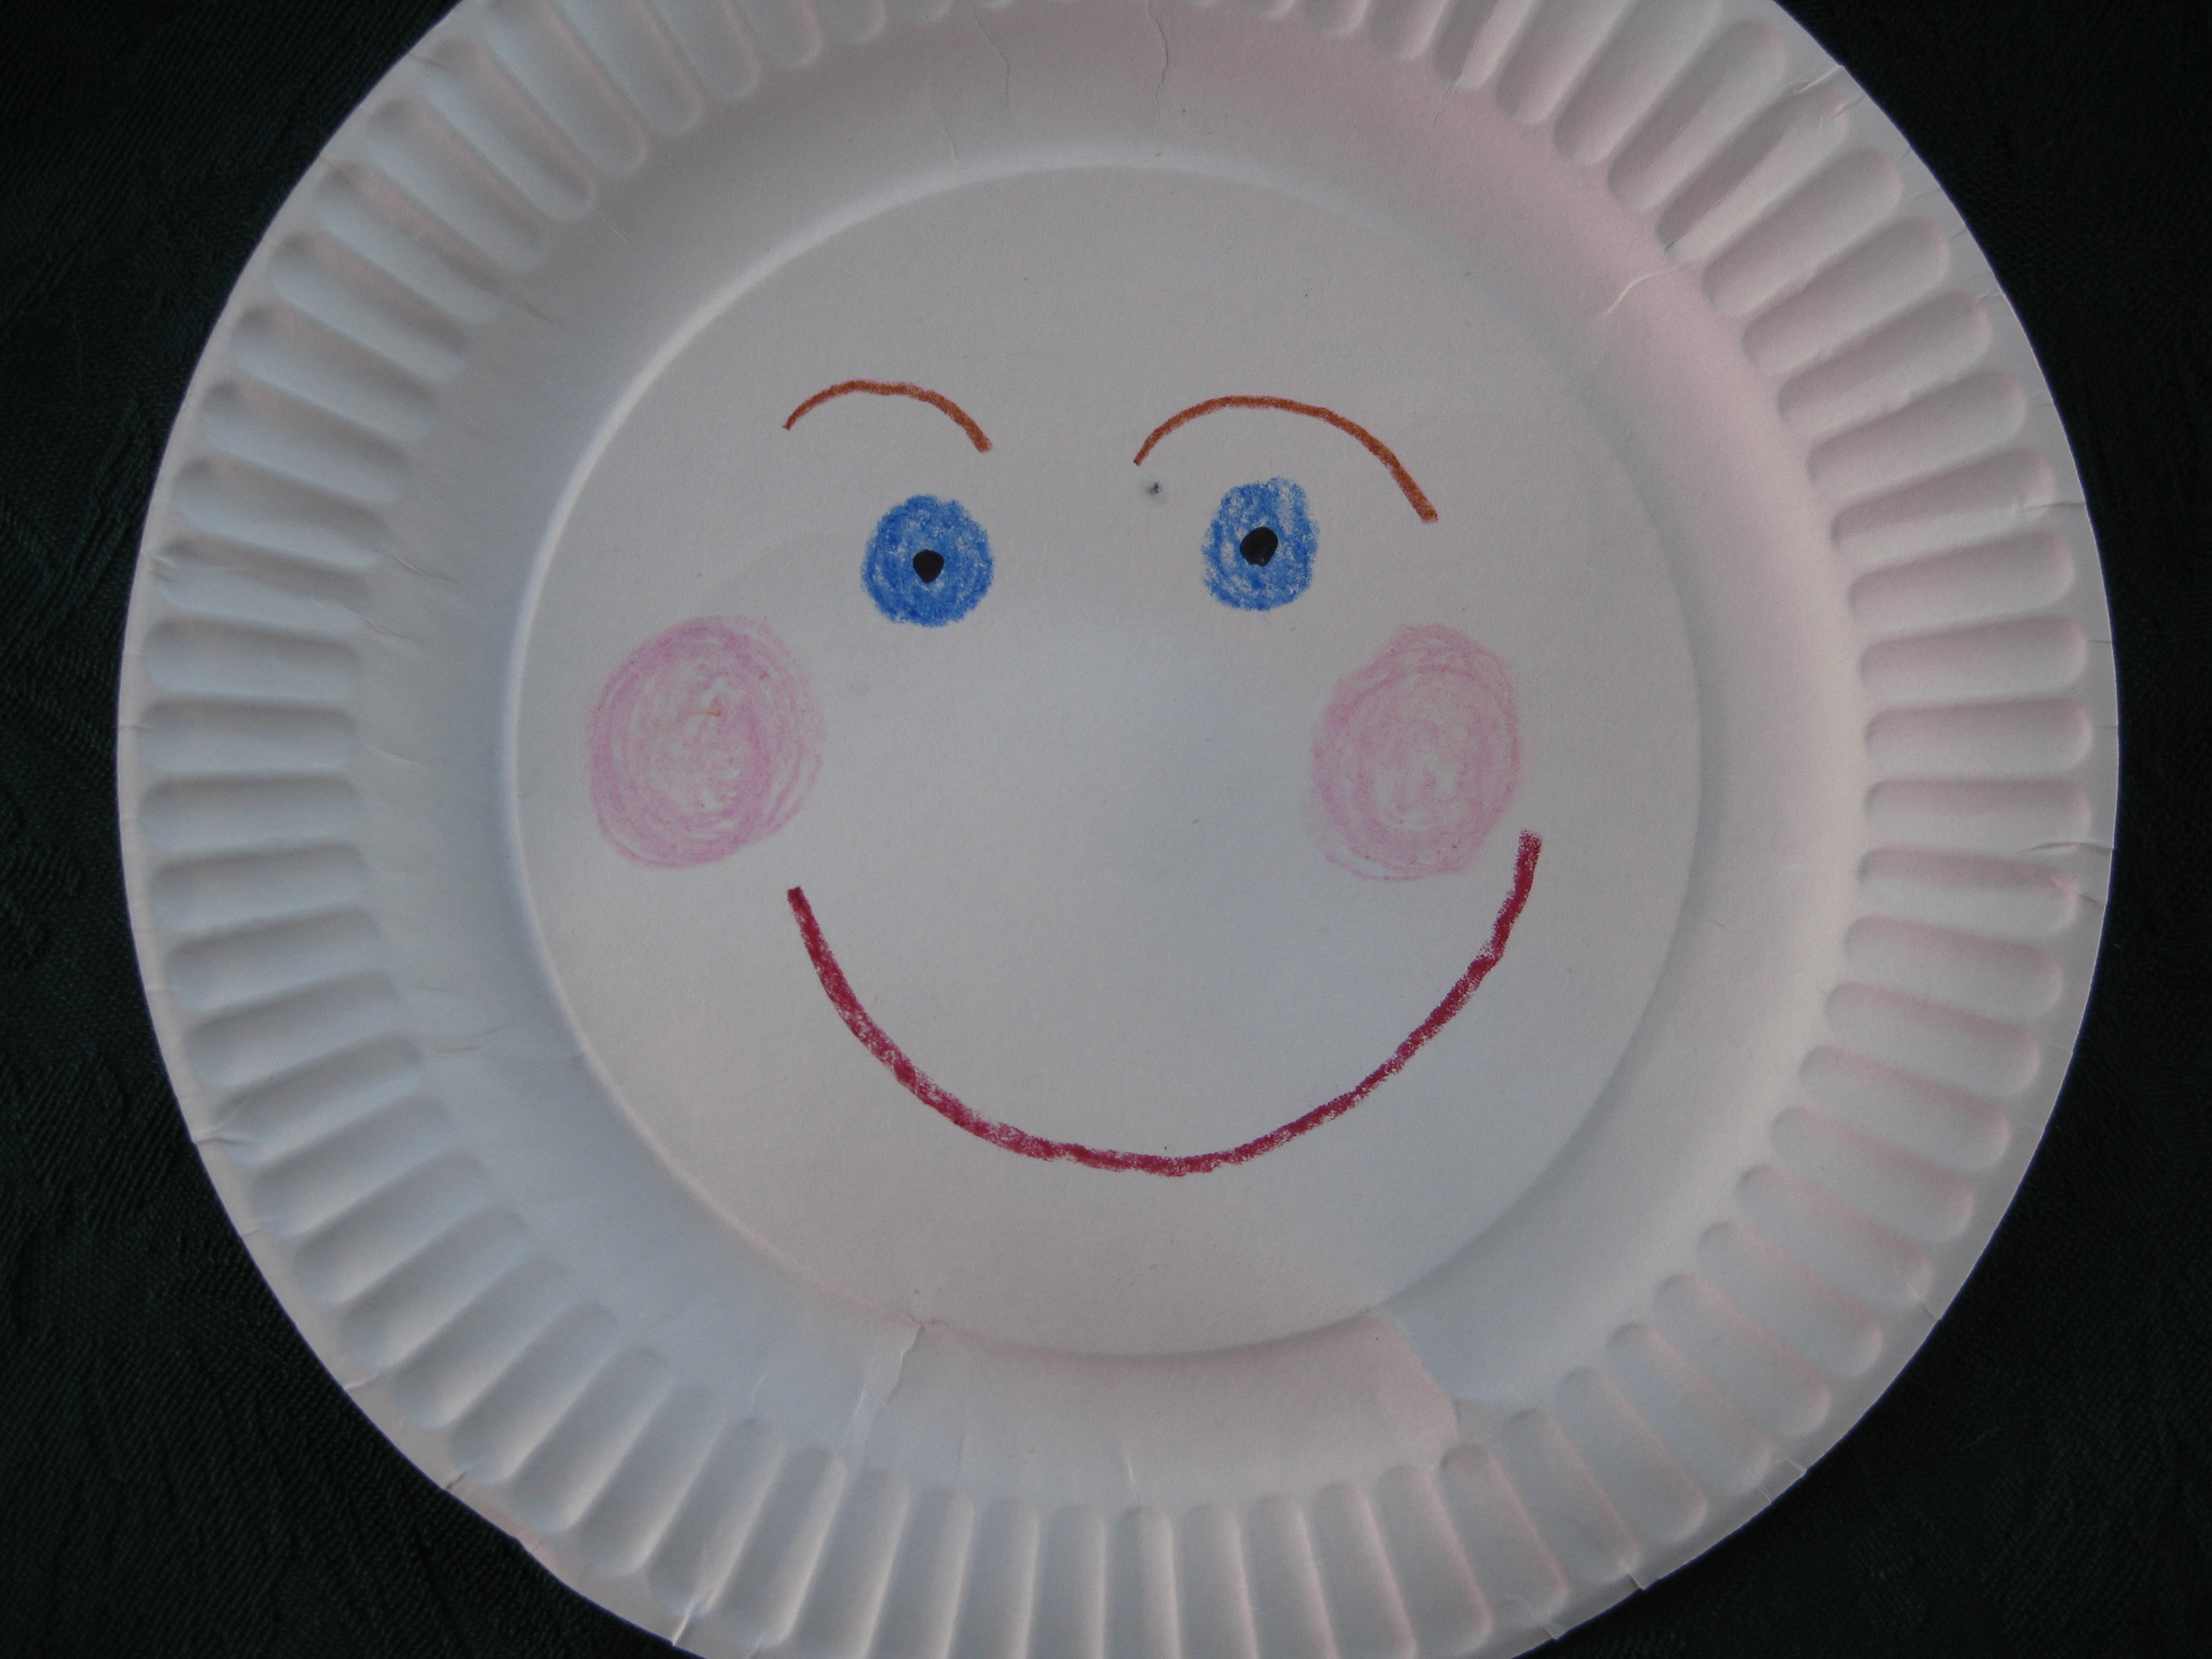 Paper Plate Menopause Lady A Craft Project - talkhealth Blogtalkhealth Blog & Paper Plate Menopause Lady: A Craft Project - talkhealth ...